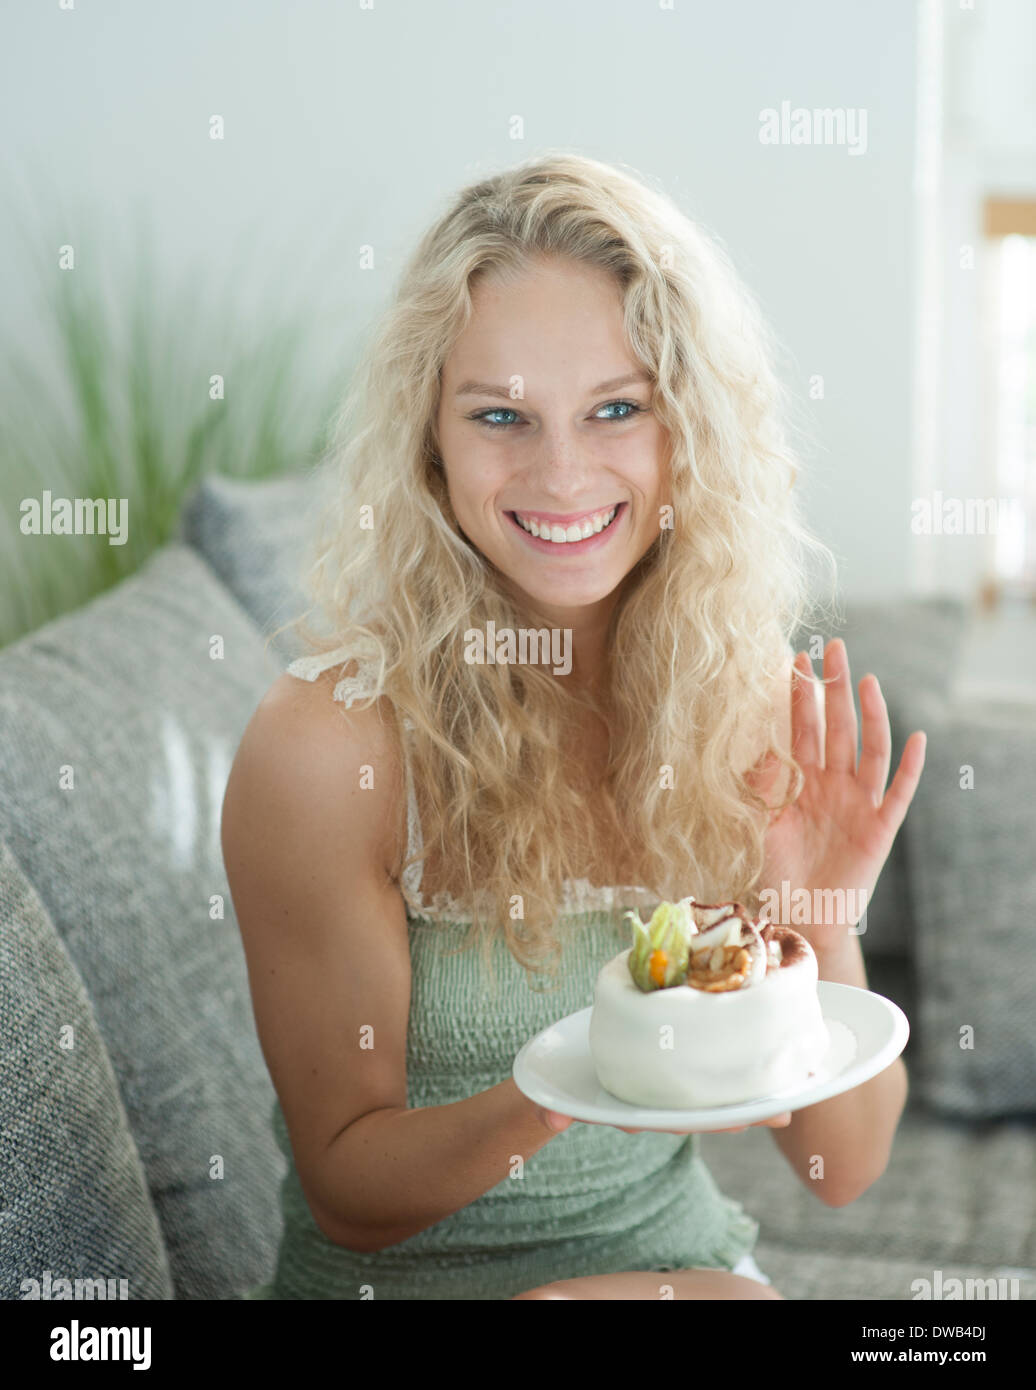 Happy woman gesturing while holding cake in house - Stock Image